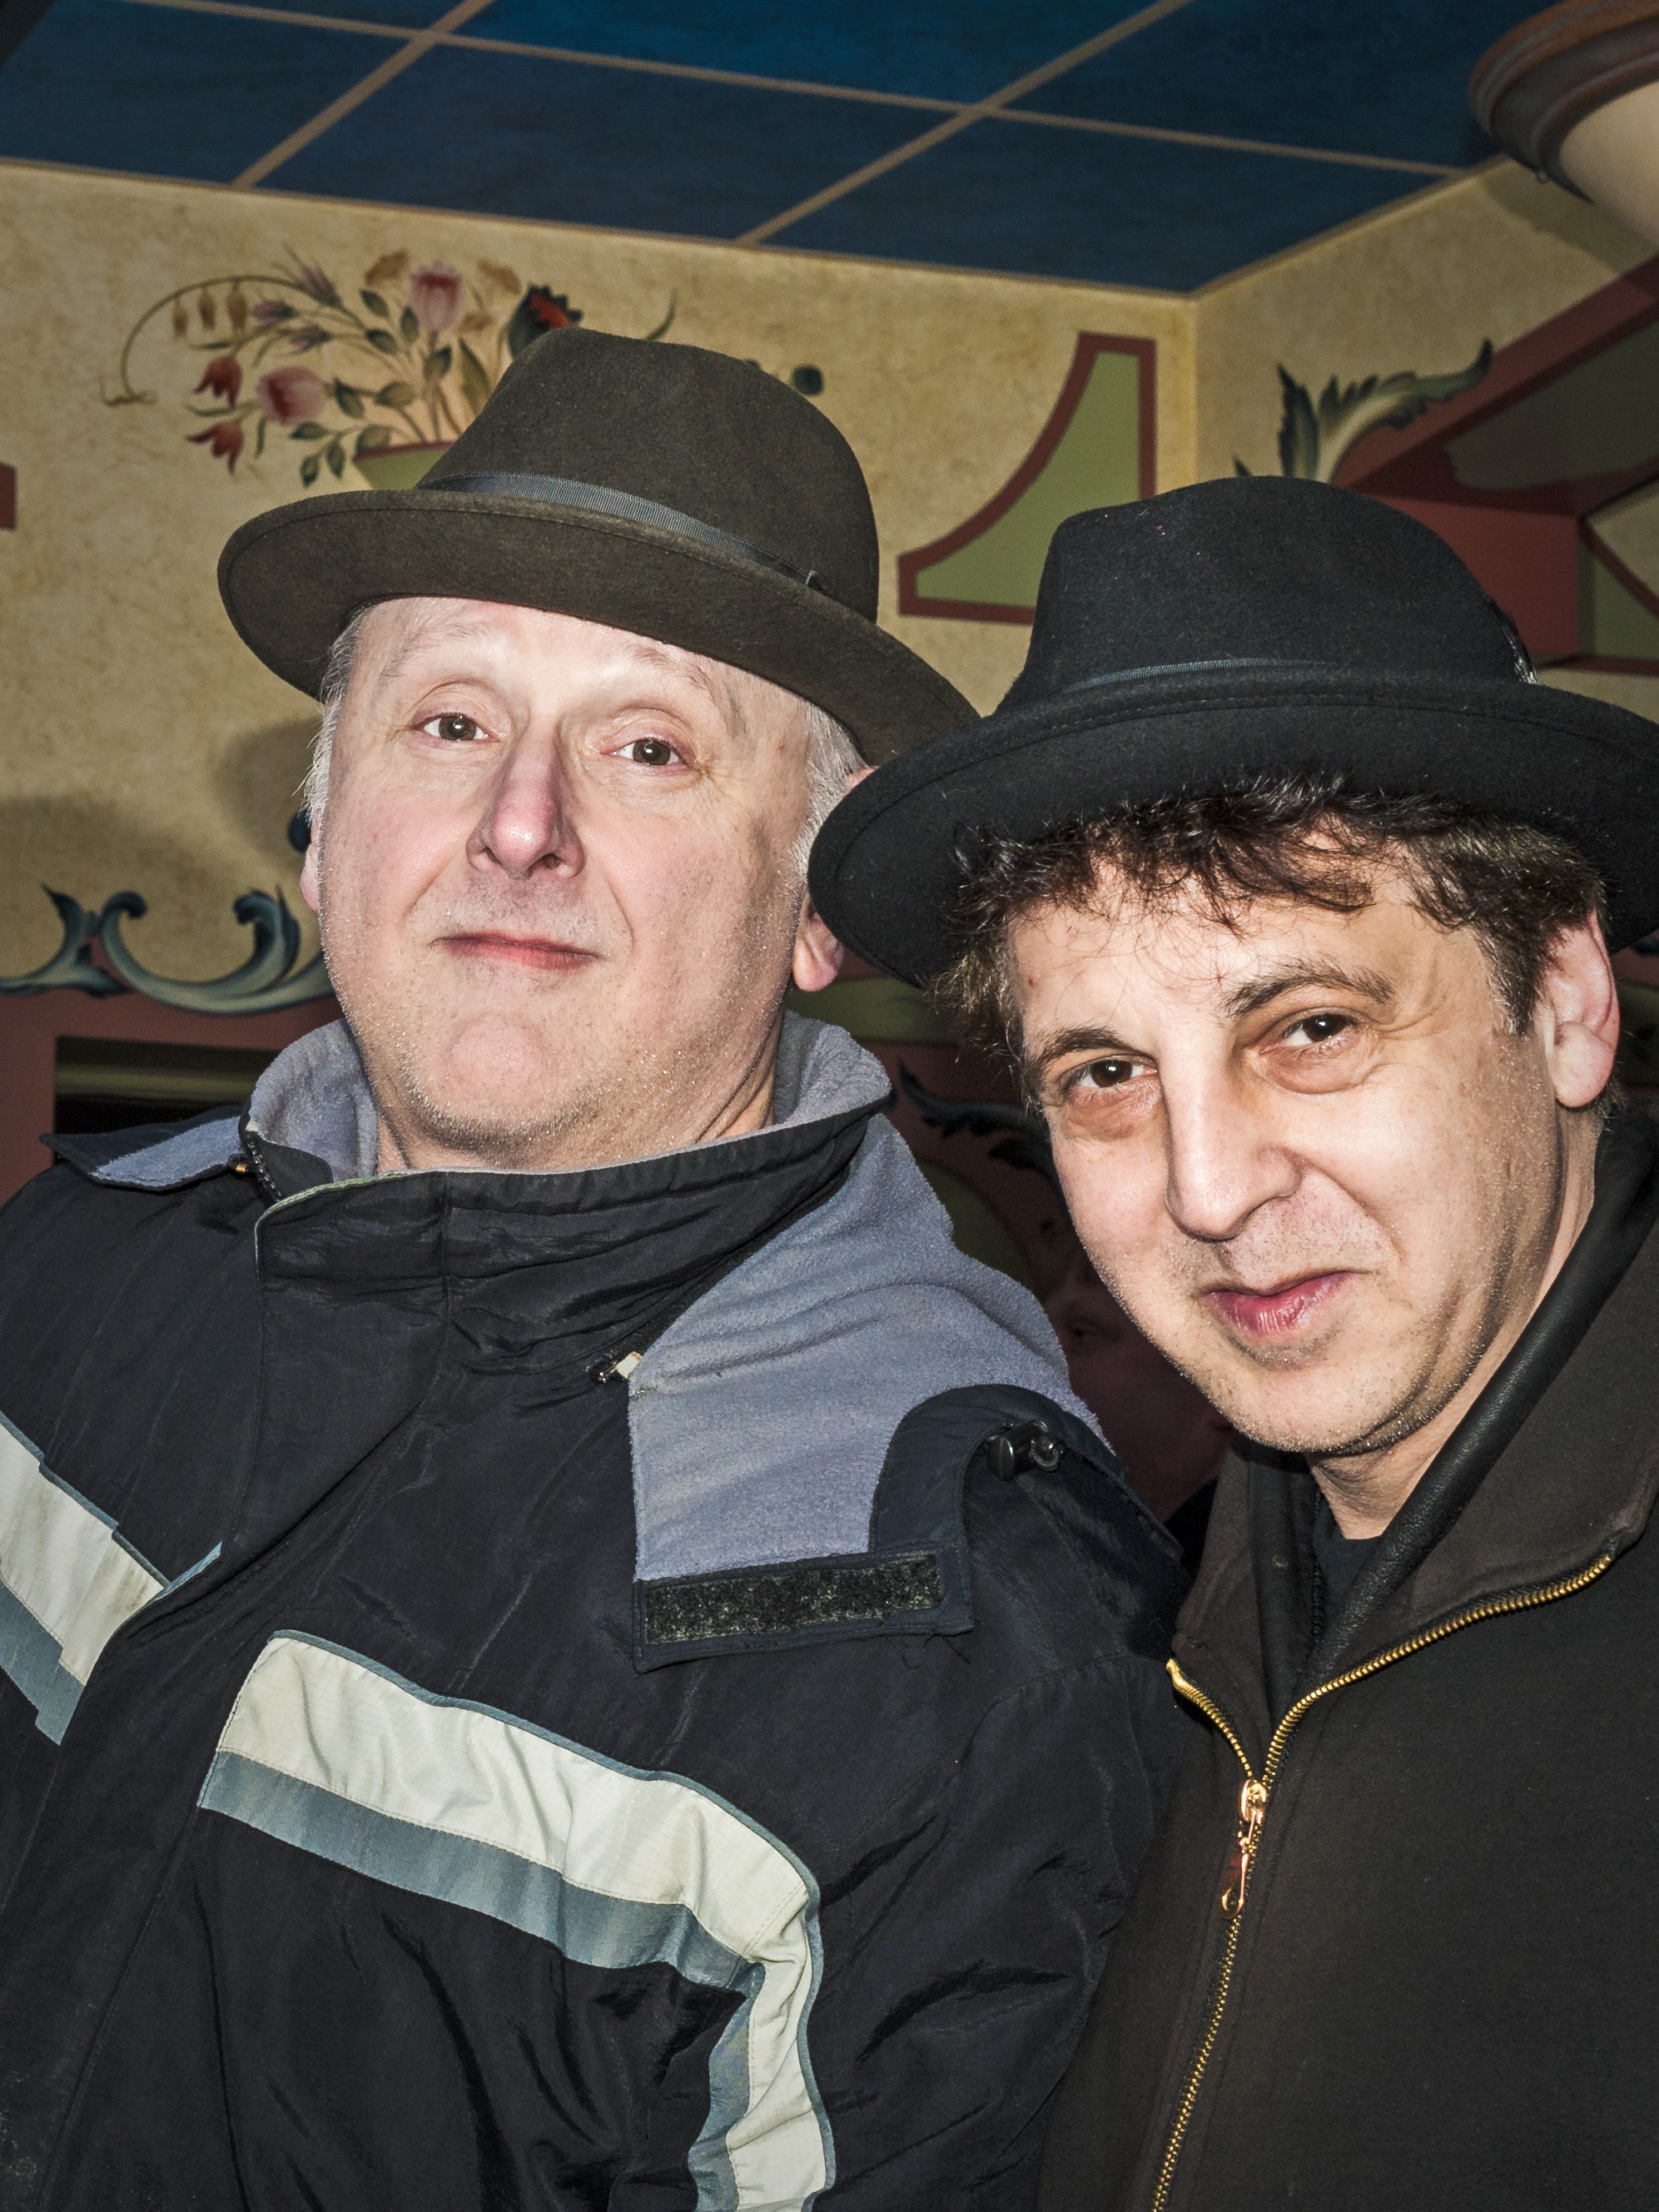 Arne Fogel and Magic Marc / Black Forest Inn / Minneapolis, Minnesota / January 29th, 2015 / Photo by Gamini Kumara